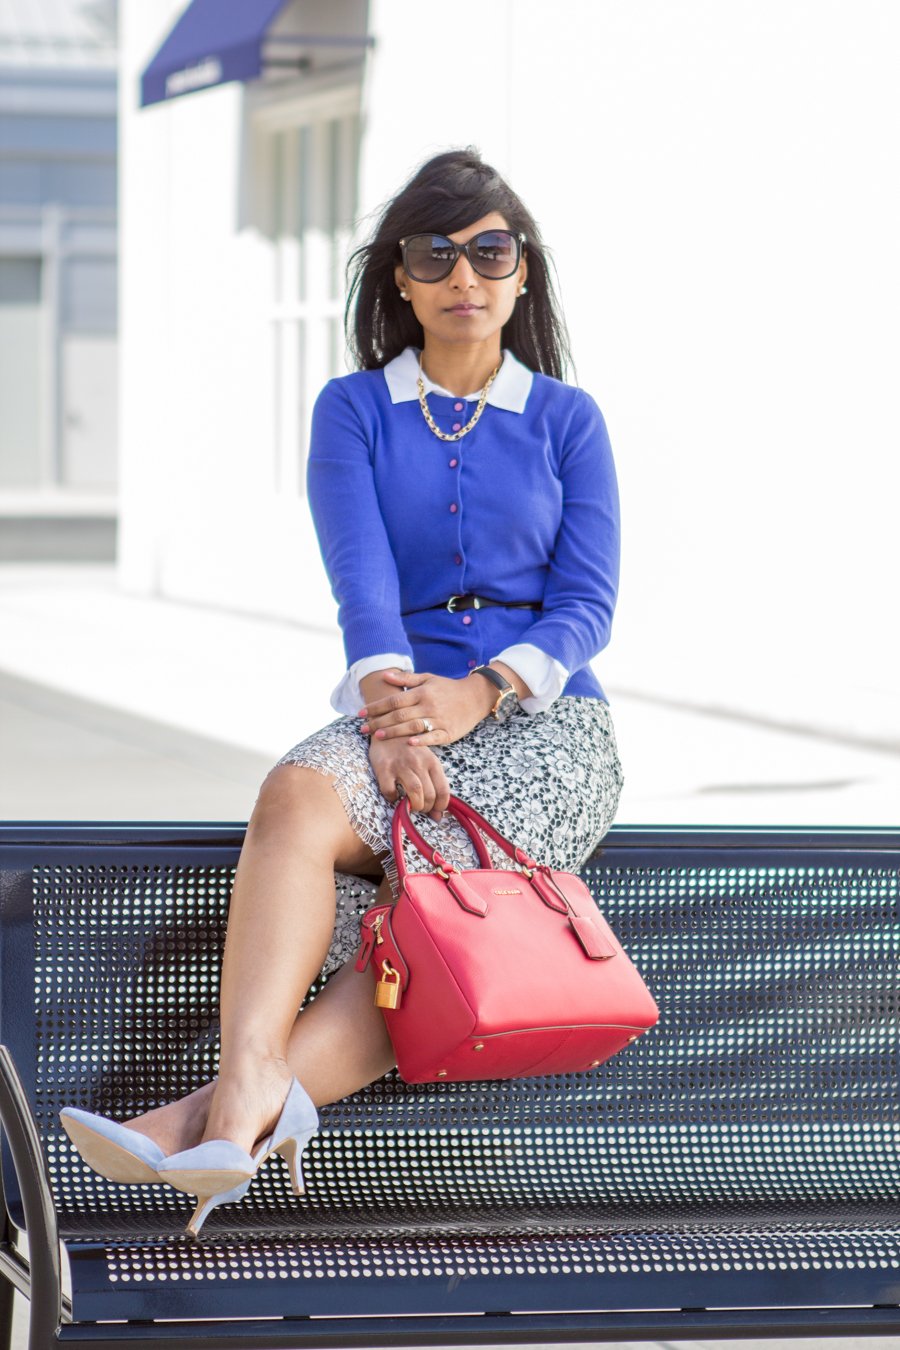 lace skirt, floral lace, pencil skirt, white button-down, cobalt blue cardigan, blue suede pumps, kitten heels, pointed toe, ann taylor, jcrew, h&m, cluse, corporate fashion, monday to friday style, 9 to 5 style, work wear, boss woman, dress for success, street style, boston, feminine style, work wear, corporate attire